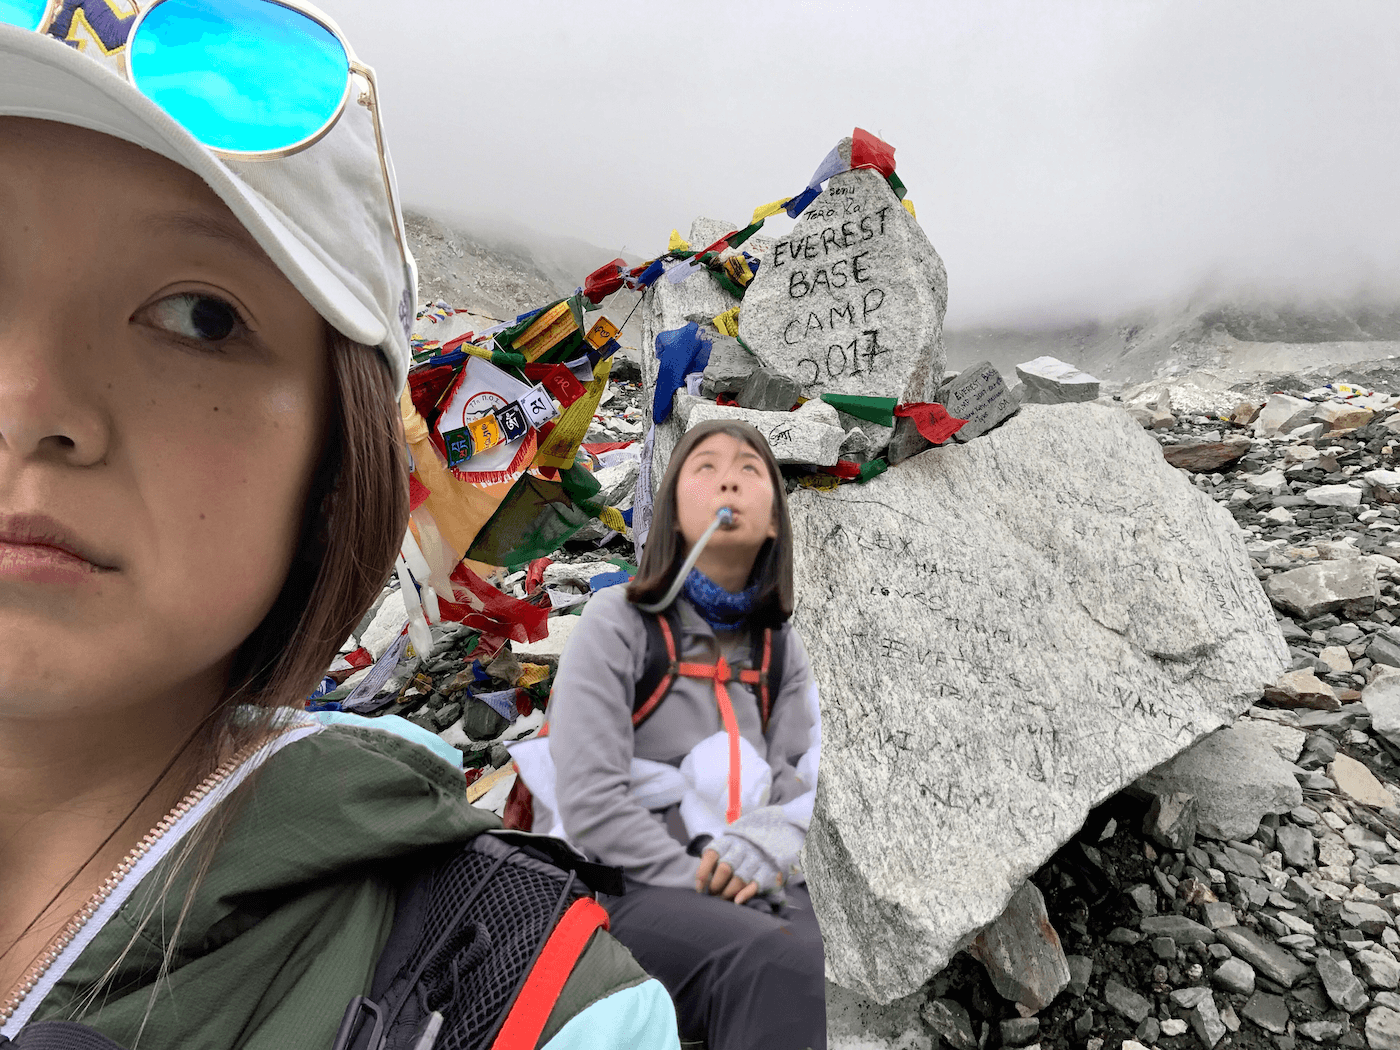 Everest Base Camp | MVMT Blog